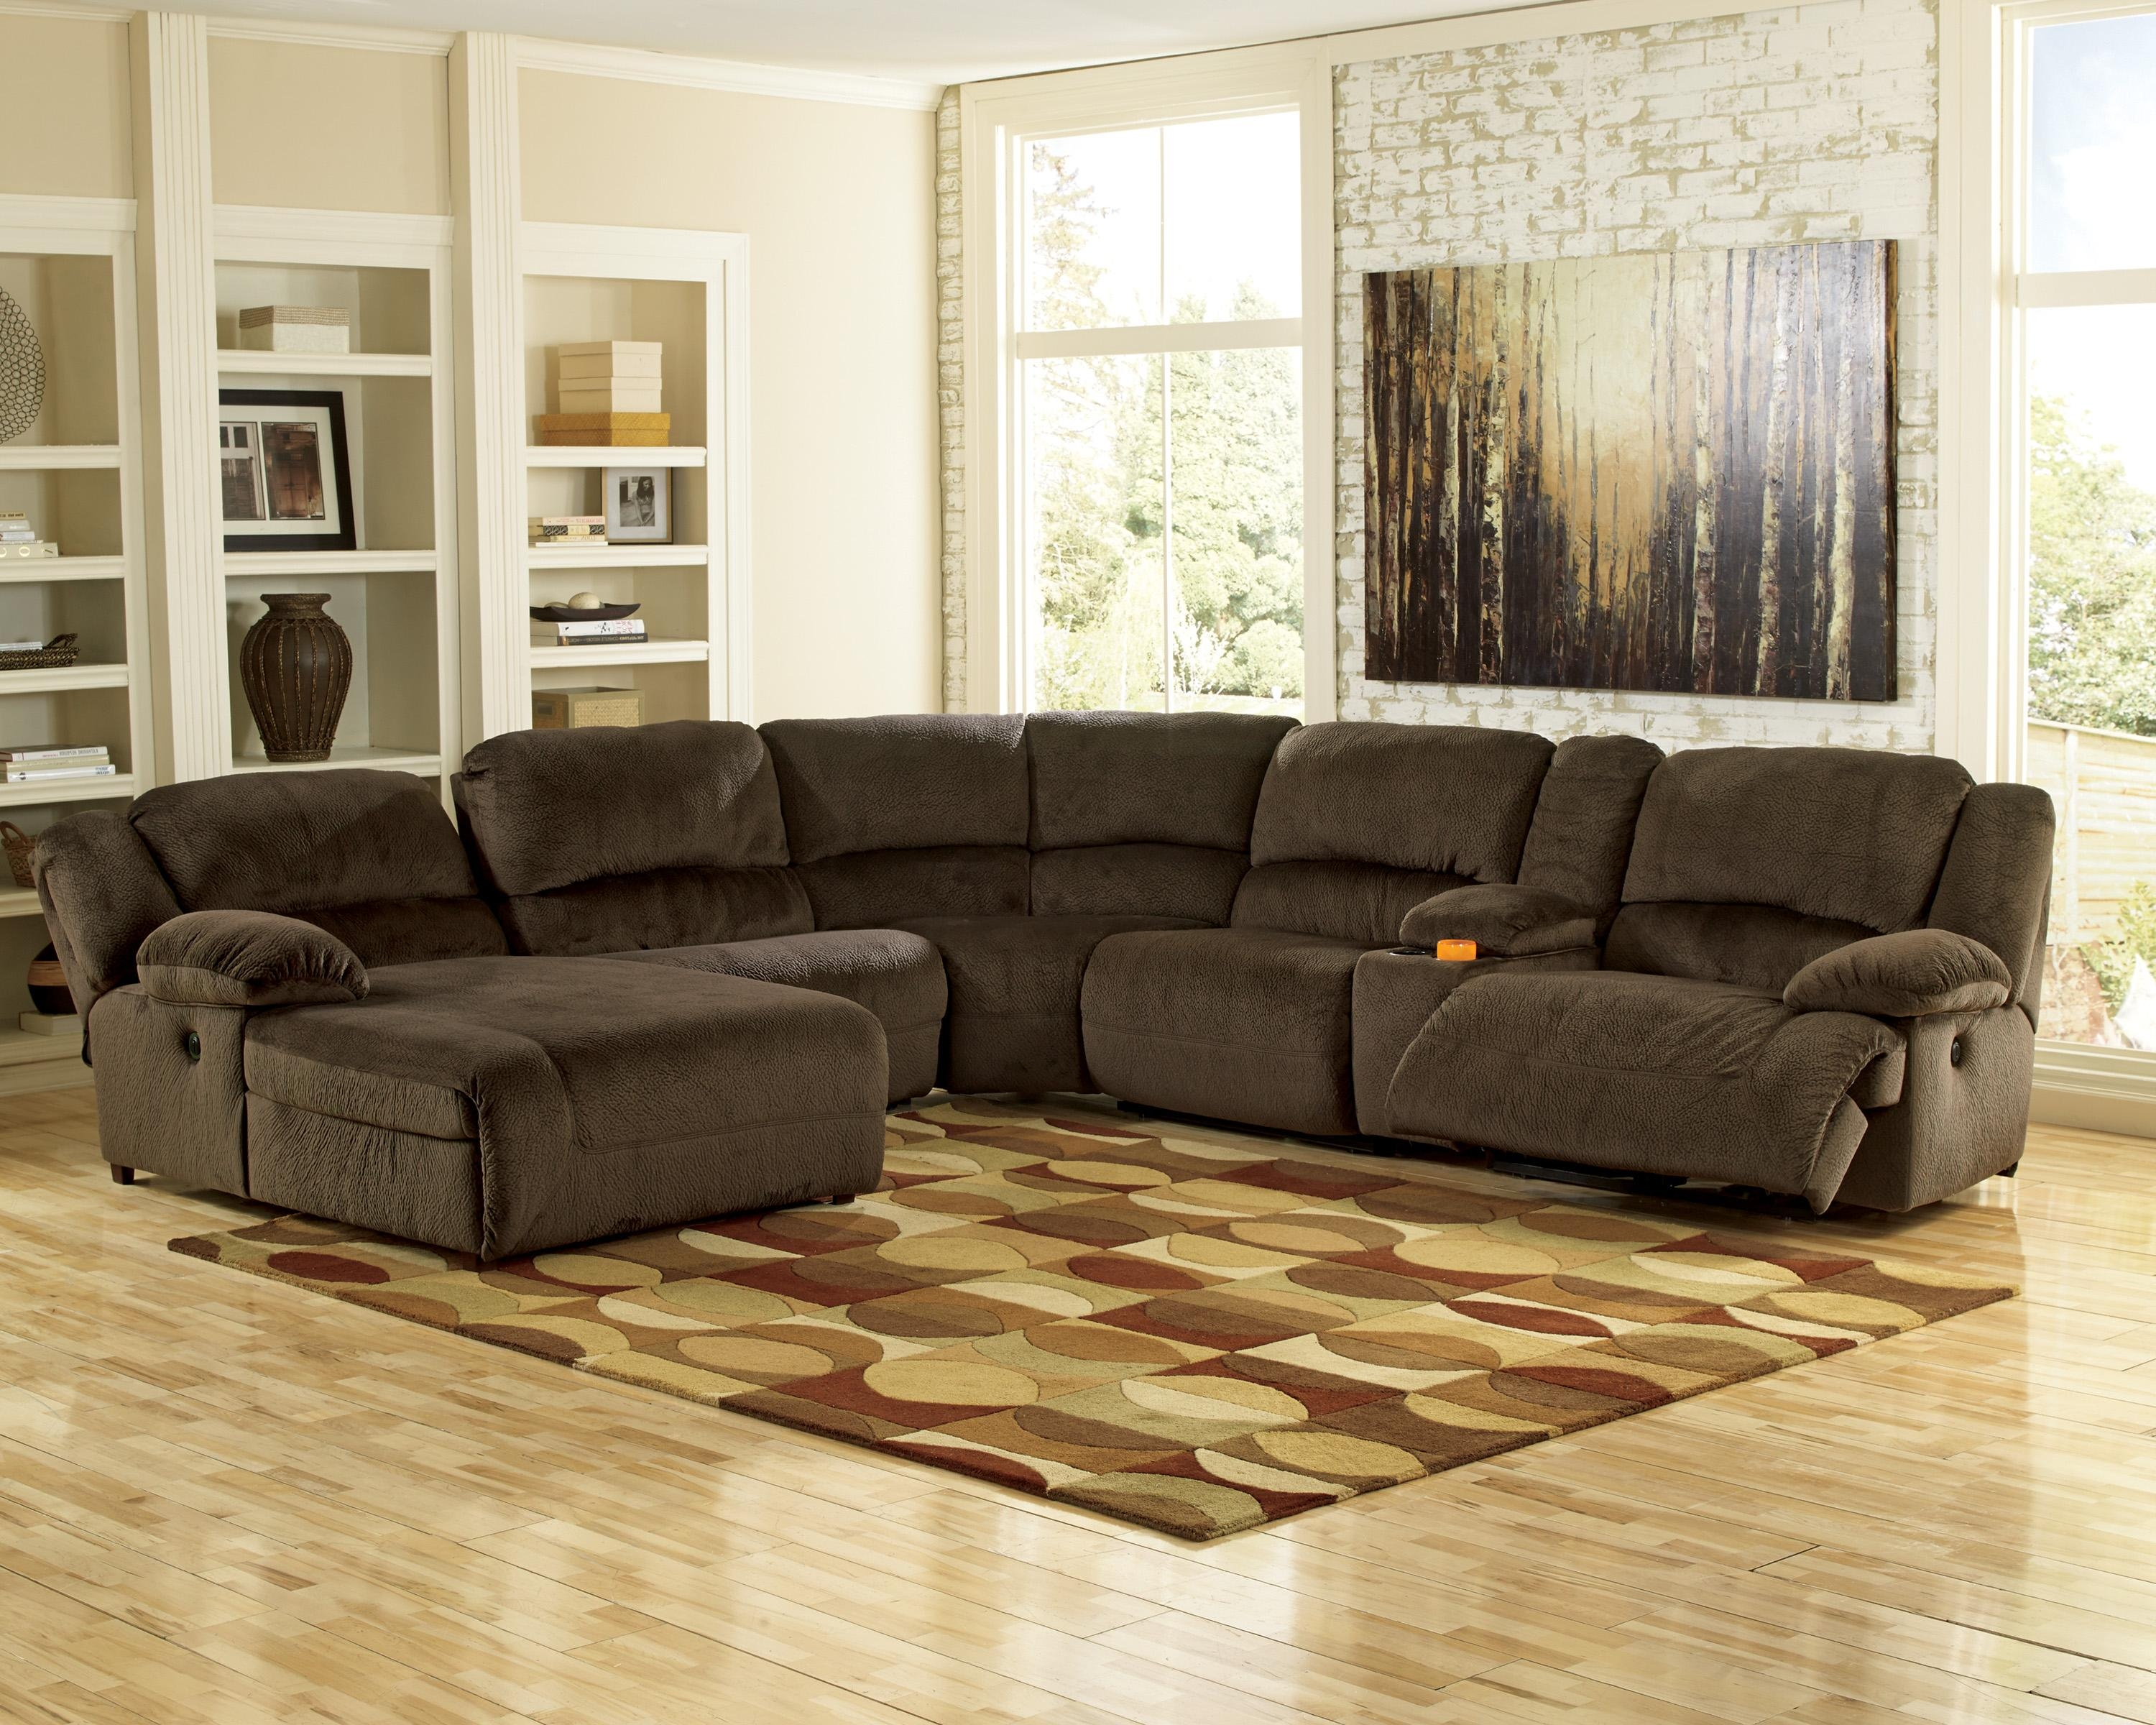 Ashley Furniture Sectional Couches (Image 3 of 20)